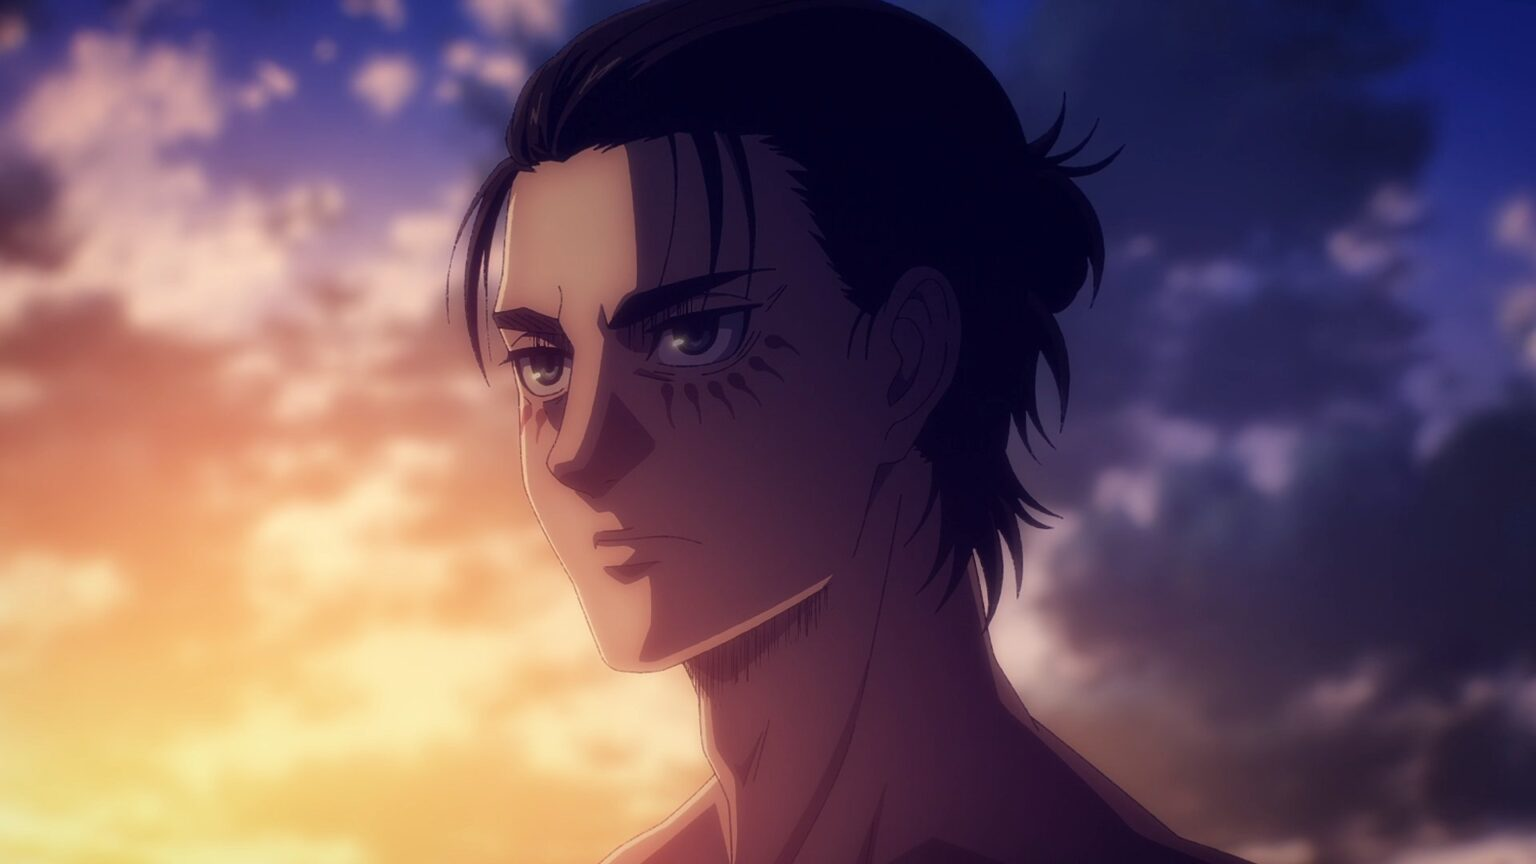 Attack On Titan Season 4 Episode 13 Release Date, Time, Preview, Where to Watch - Anime Troop